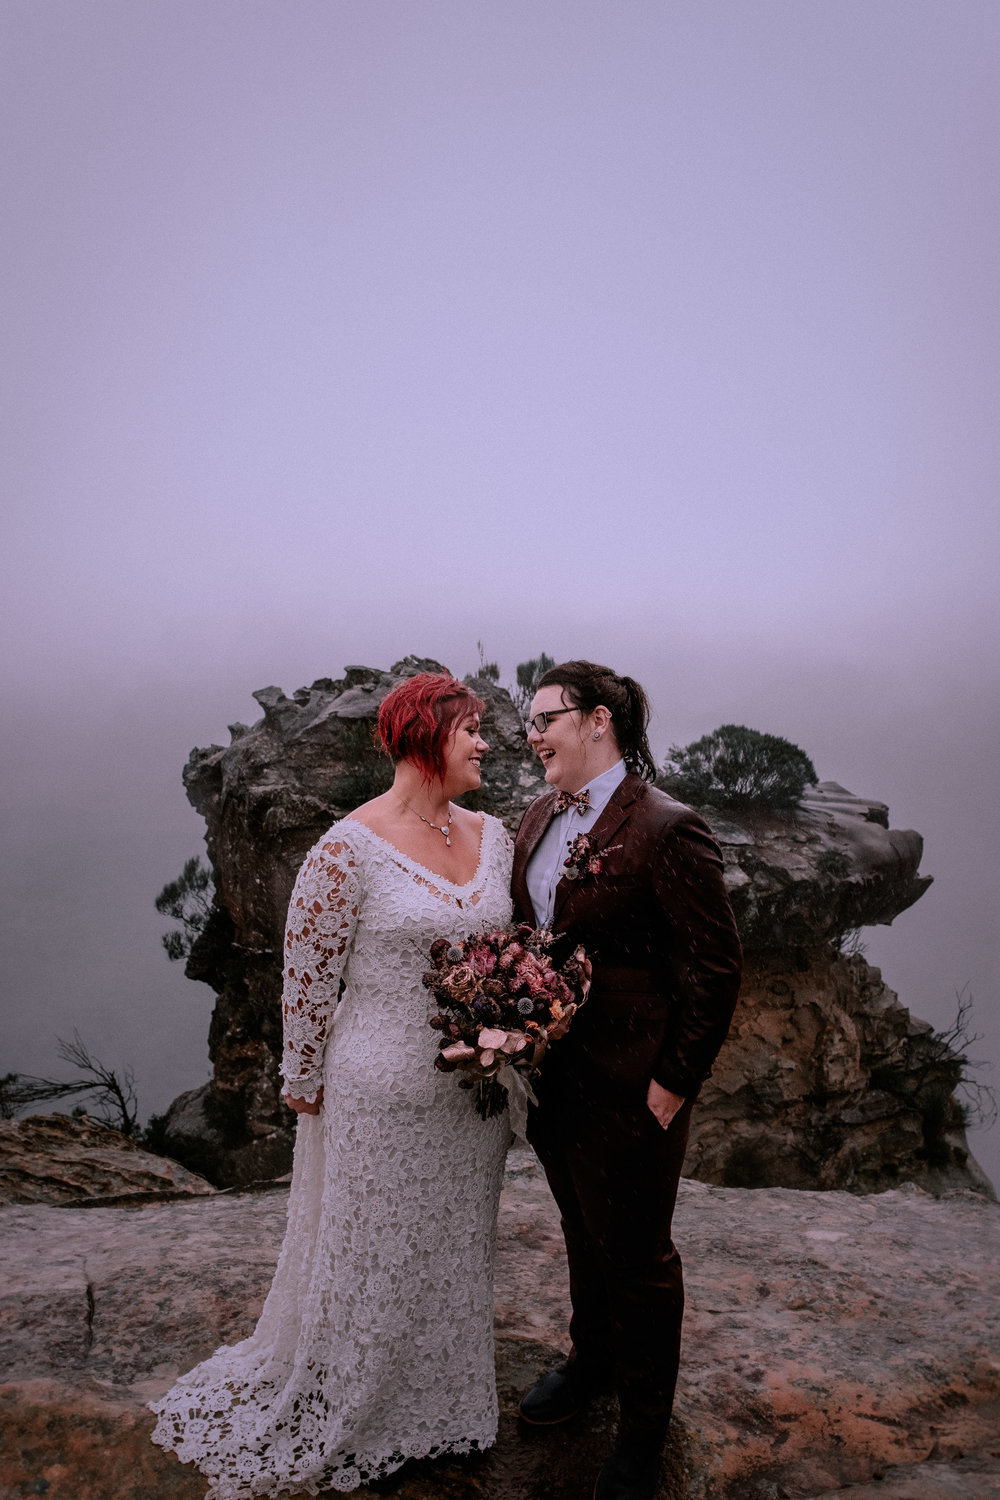 l&m_blue mountains elopement wedding photography_kings & thieves_blog (30 of 38).jpg